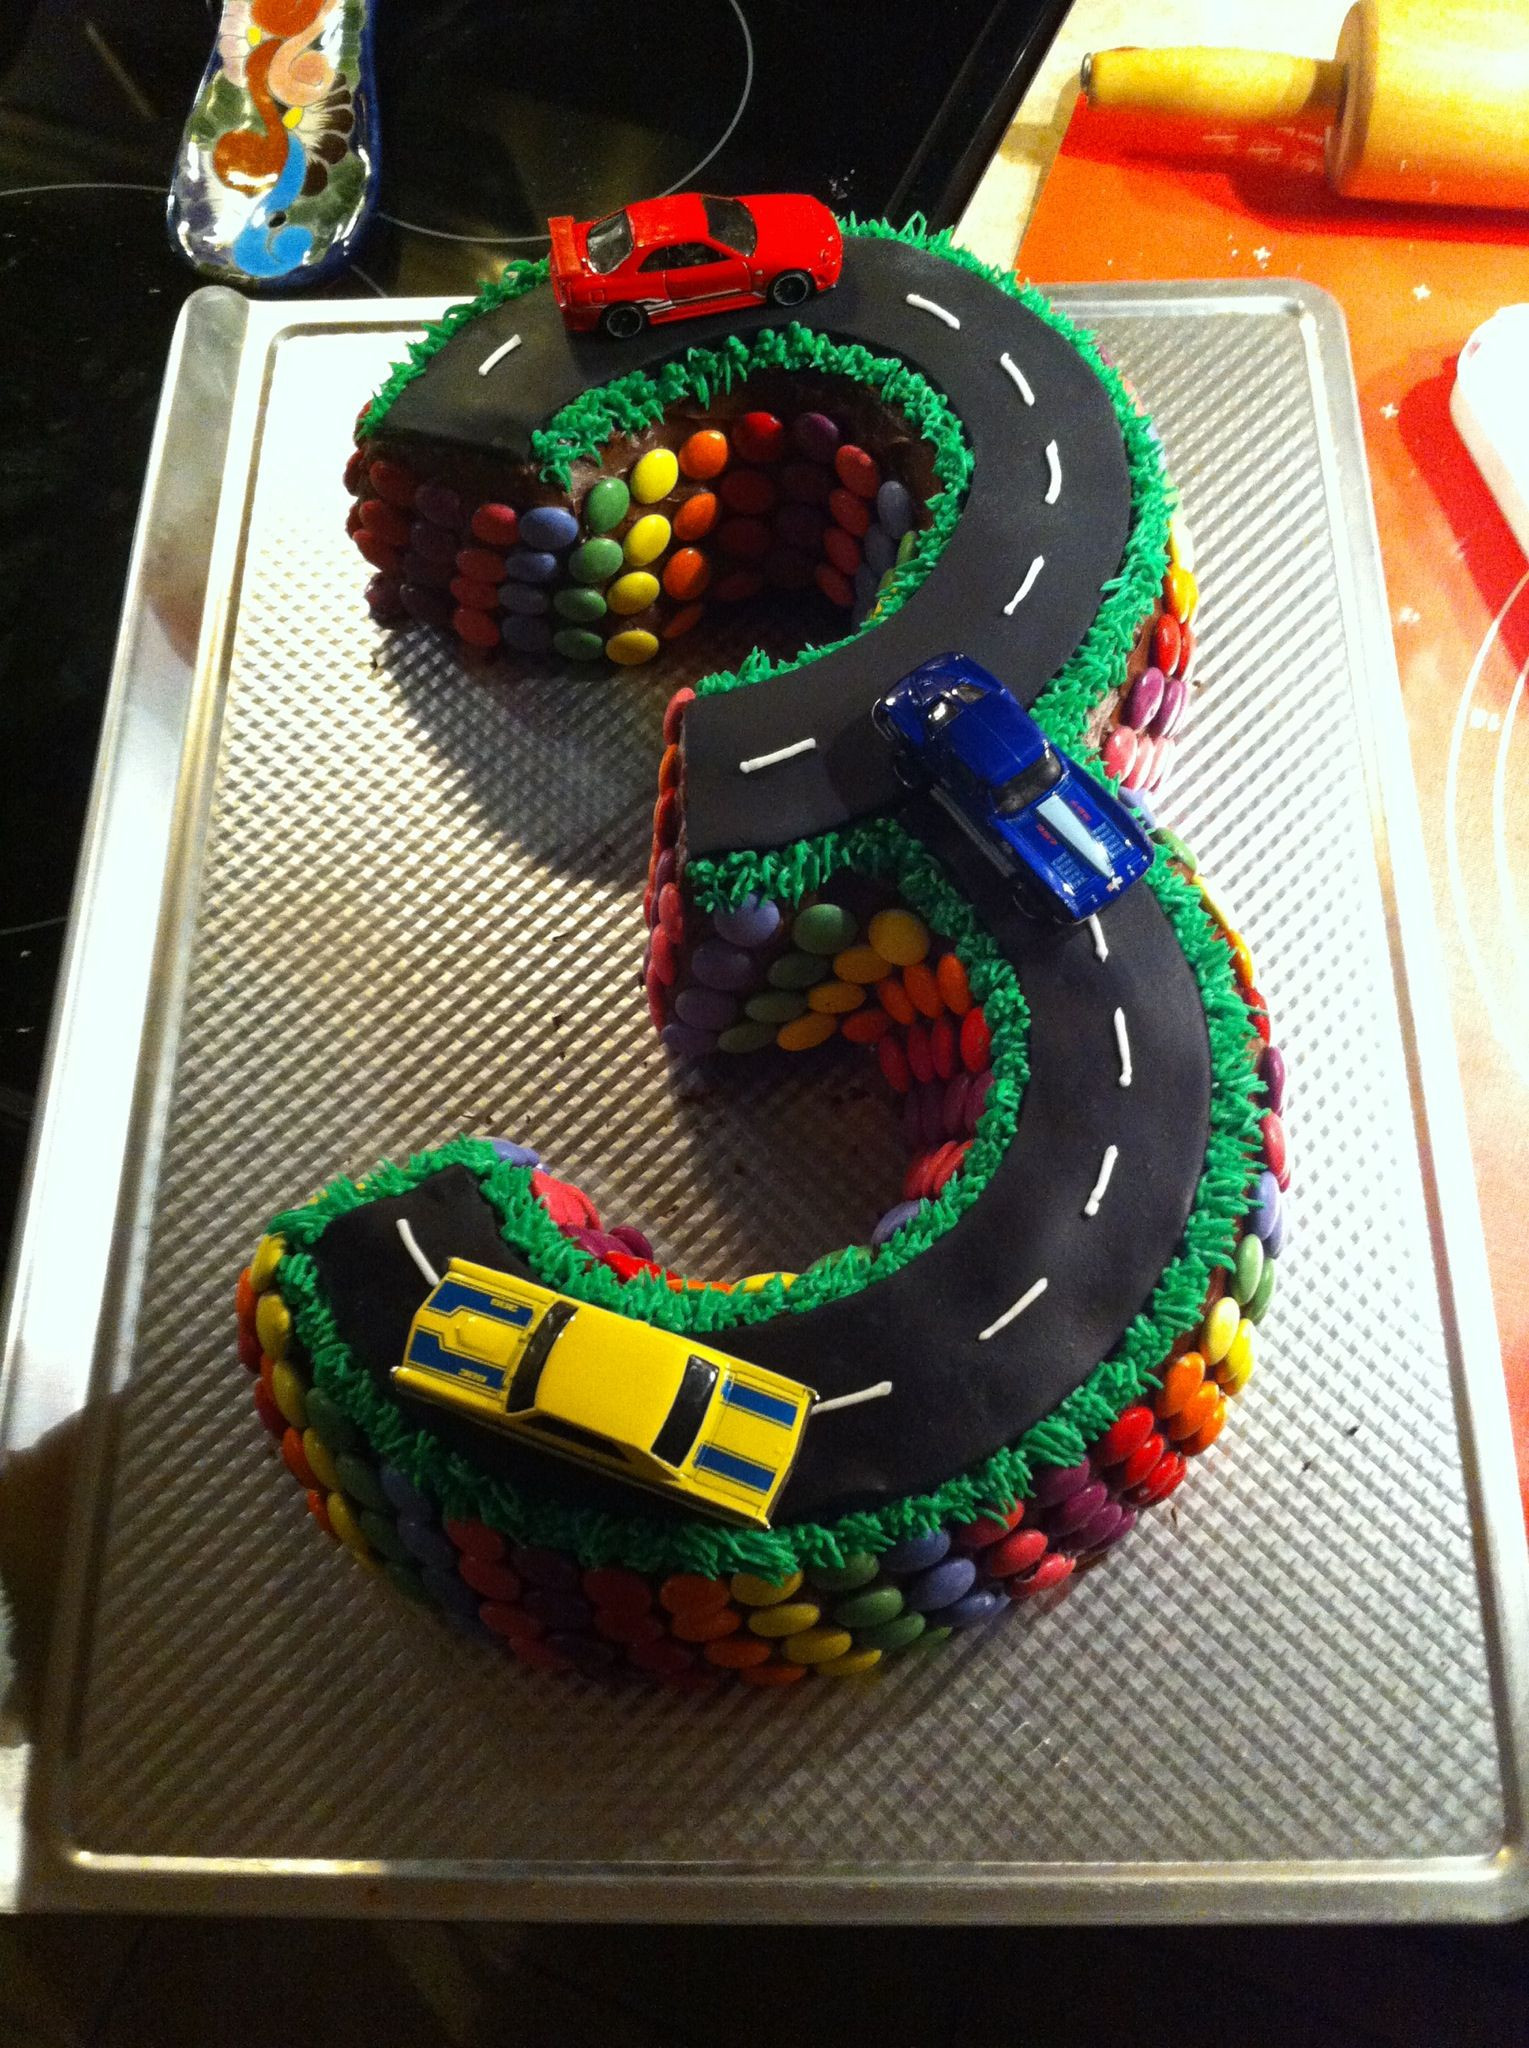 Best ideas about Birthday Cake For 3 Year Old Boy . Save or Pin 3 year old boy birthday cake if anyone wants to make this Now.